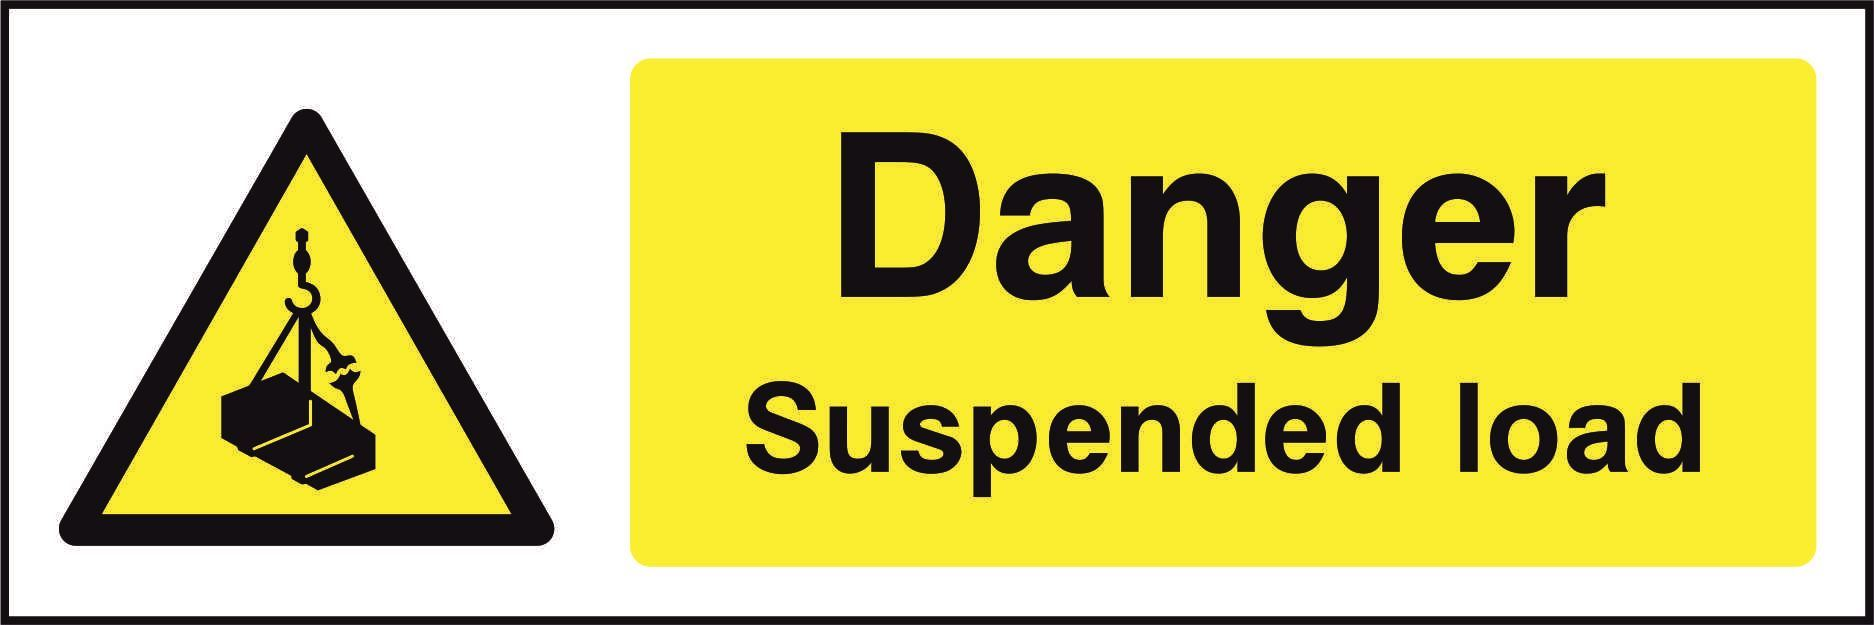 Danger Suspended load